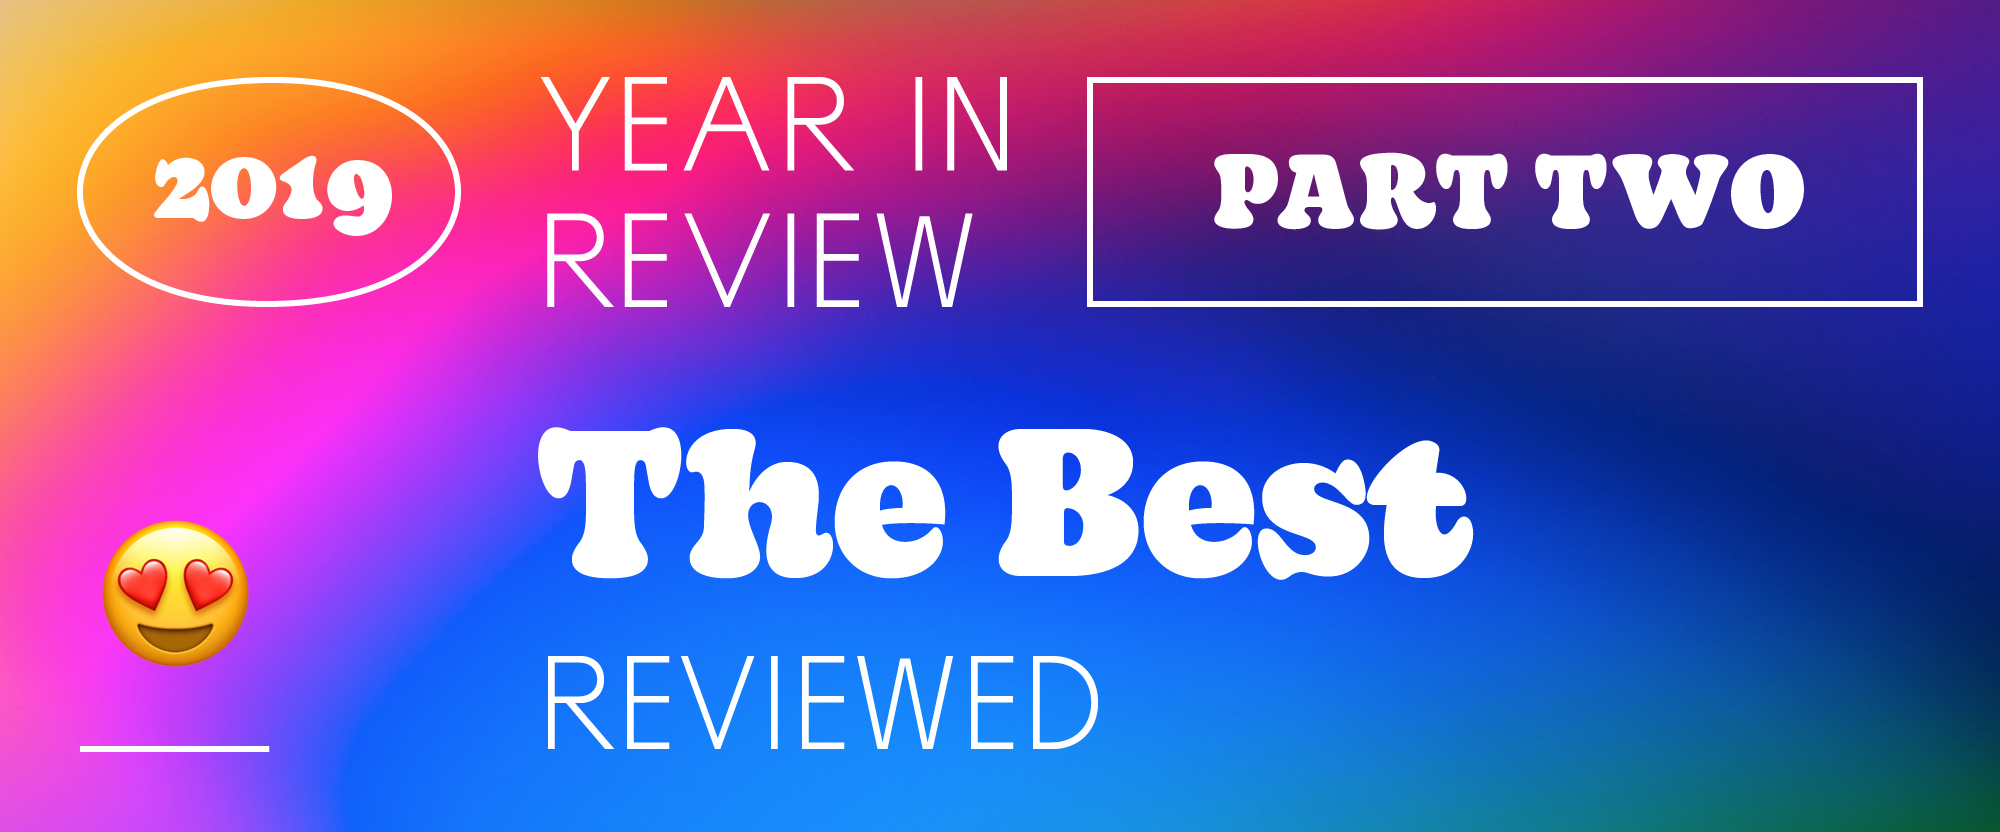 The Best and Worst Identities of 2019, Part 2: The Best Reviewed